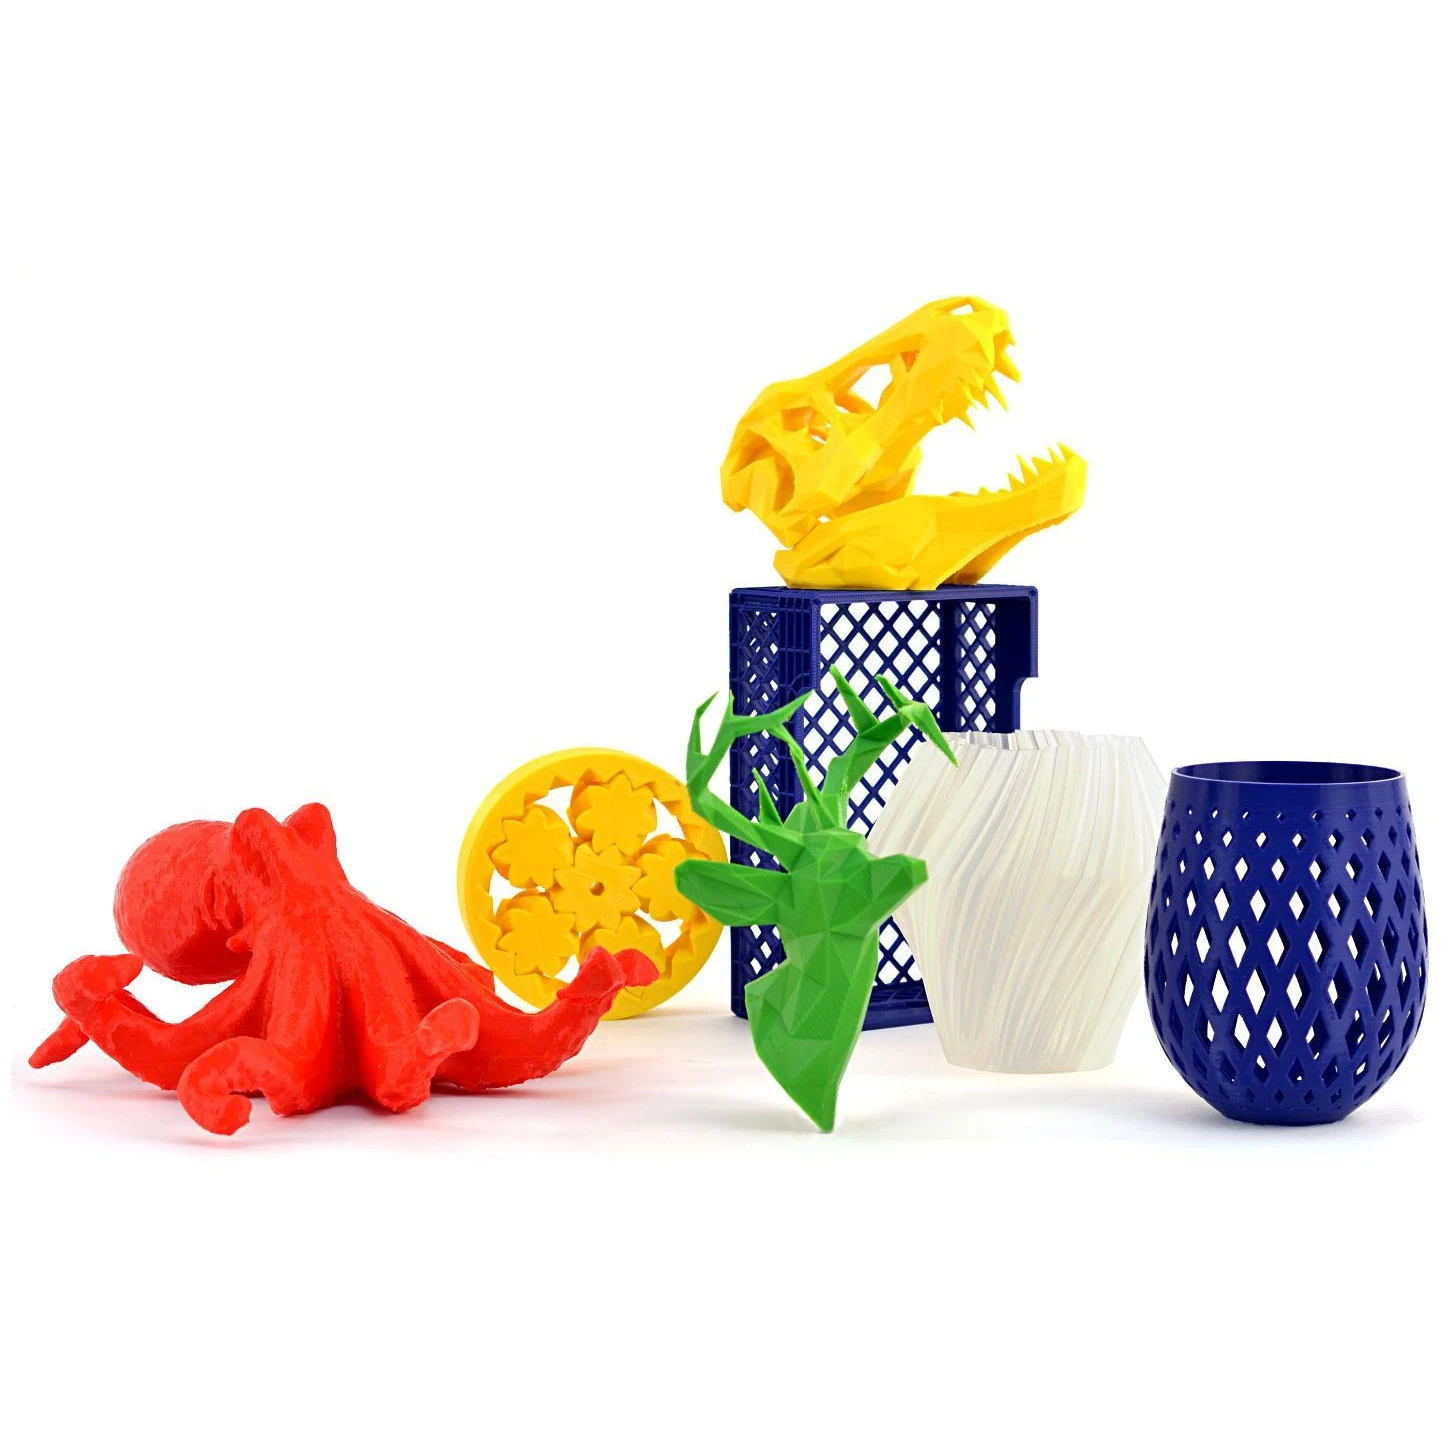 Printing with Thermoplastics: Different Types of Filament Material